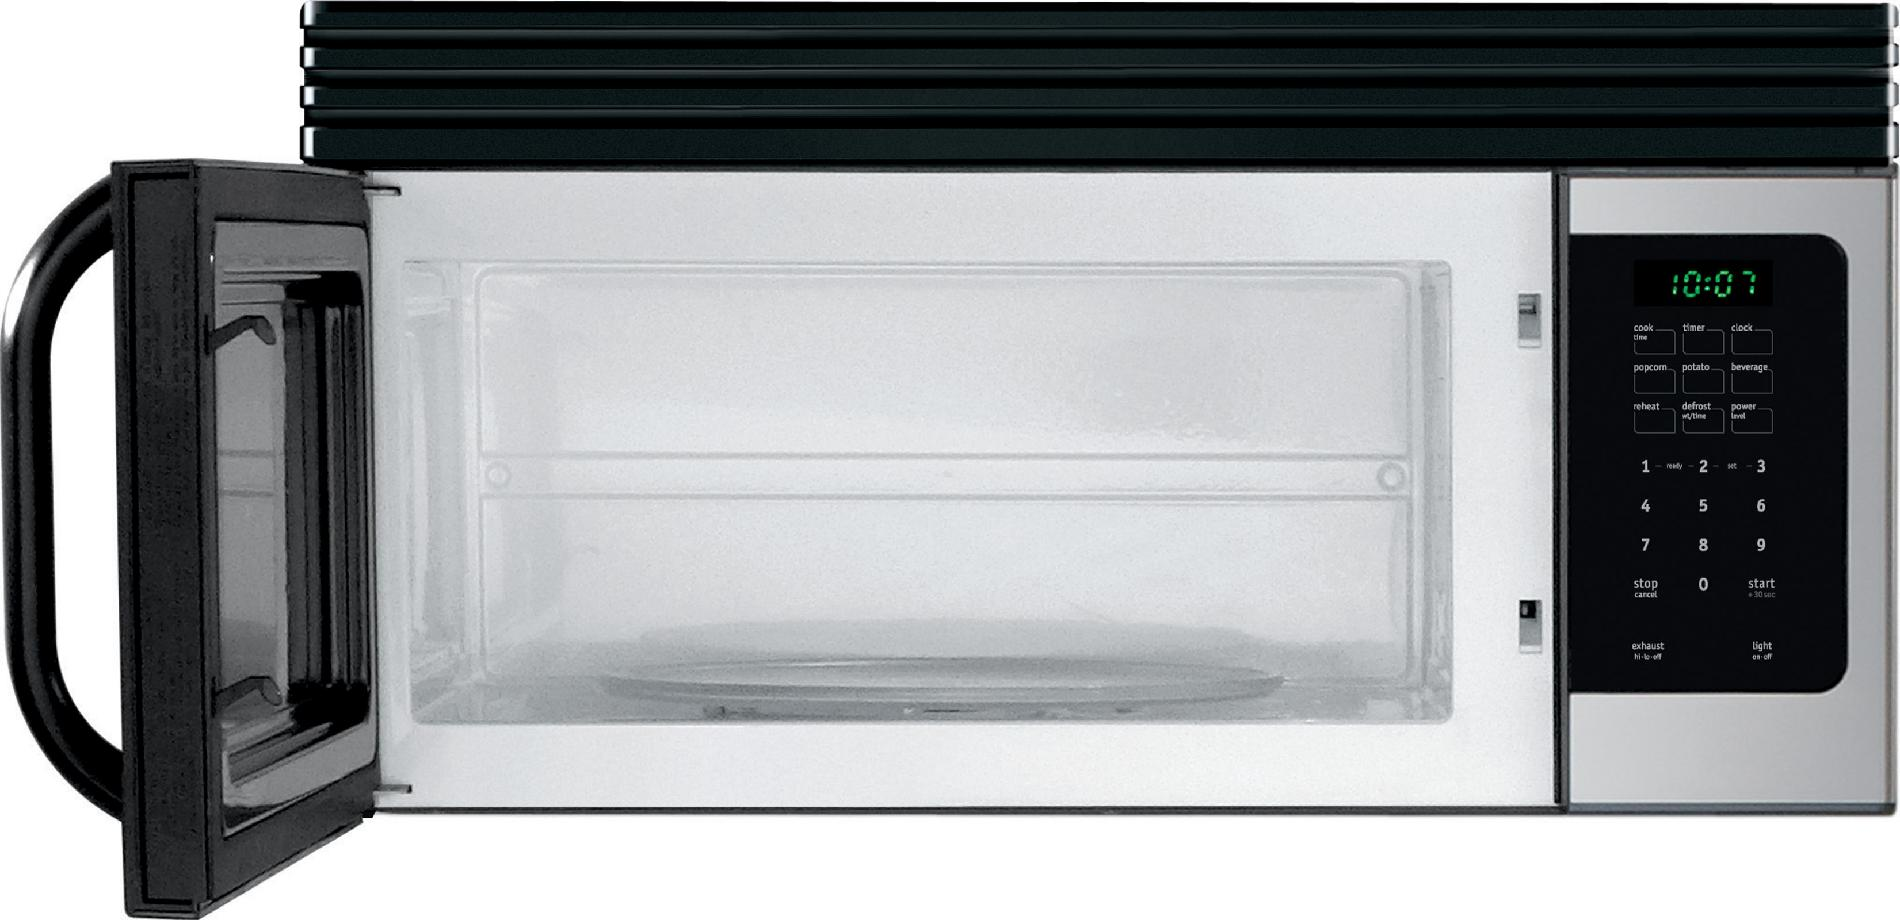 Frigidaire 1.6 cu. ft. Over-the-Range Microwave Oven - Stainless Steel